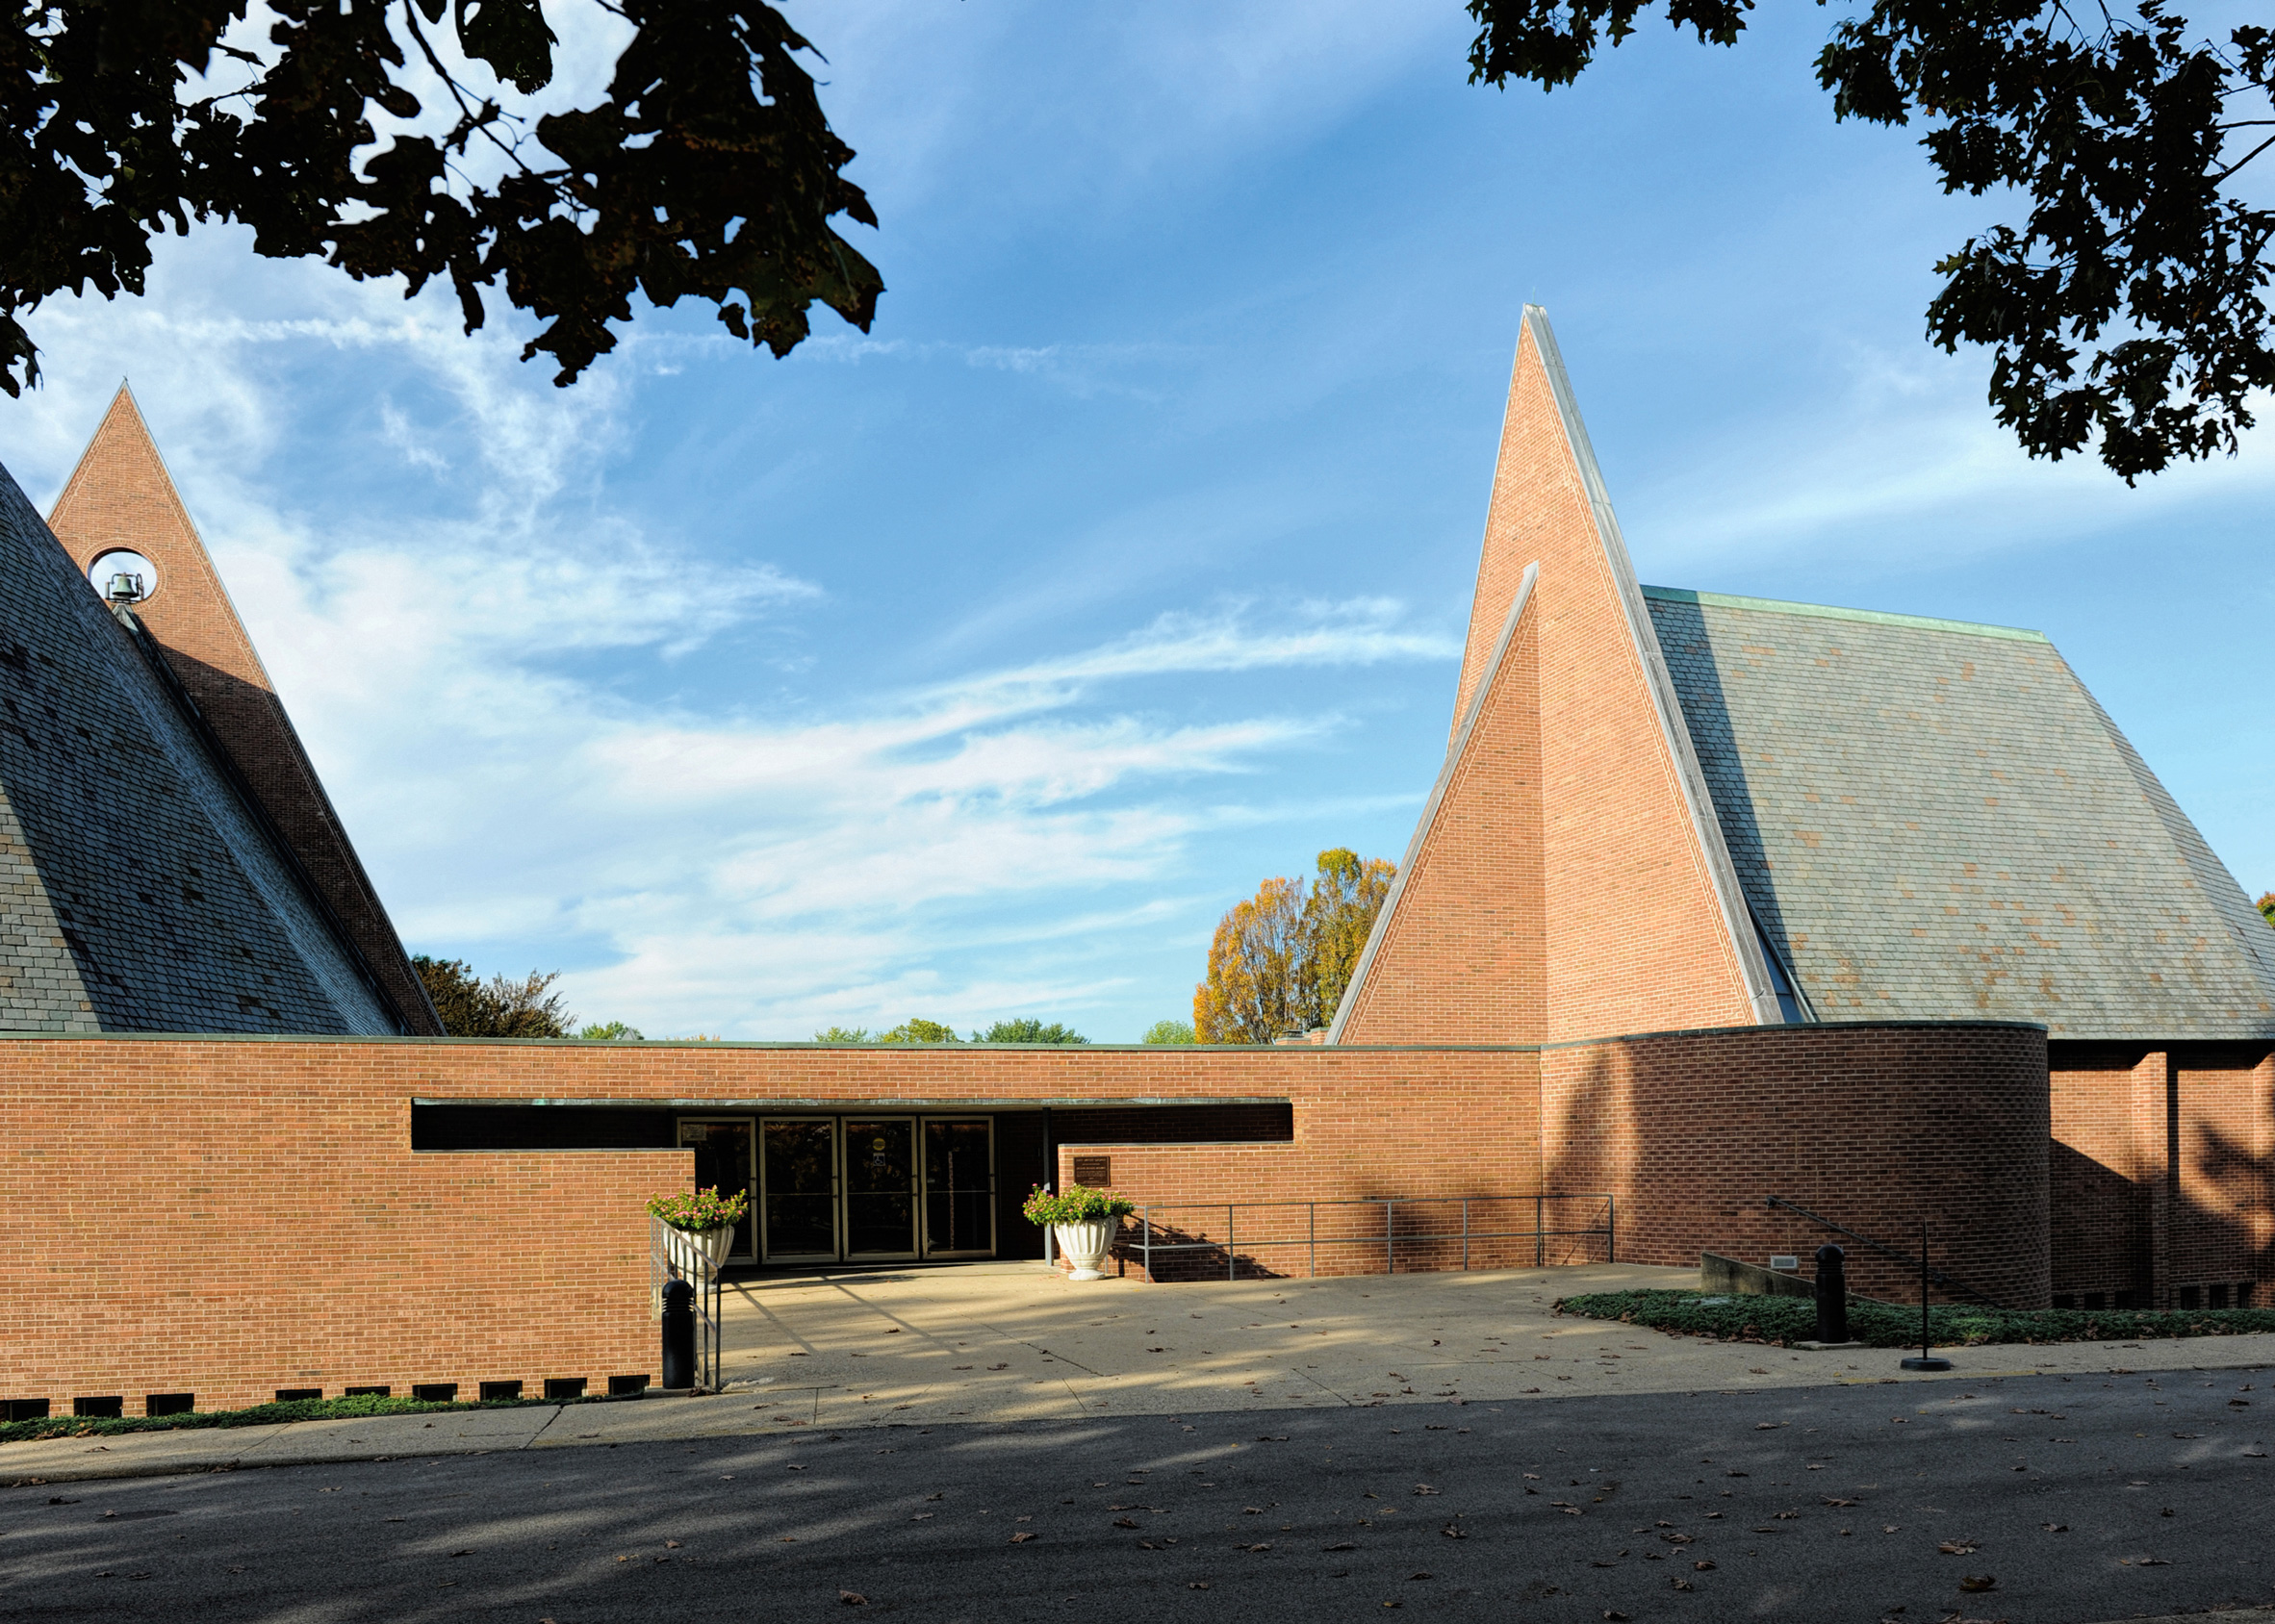 First Baptist Church by Harry Weese, 1965